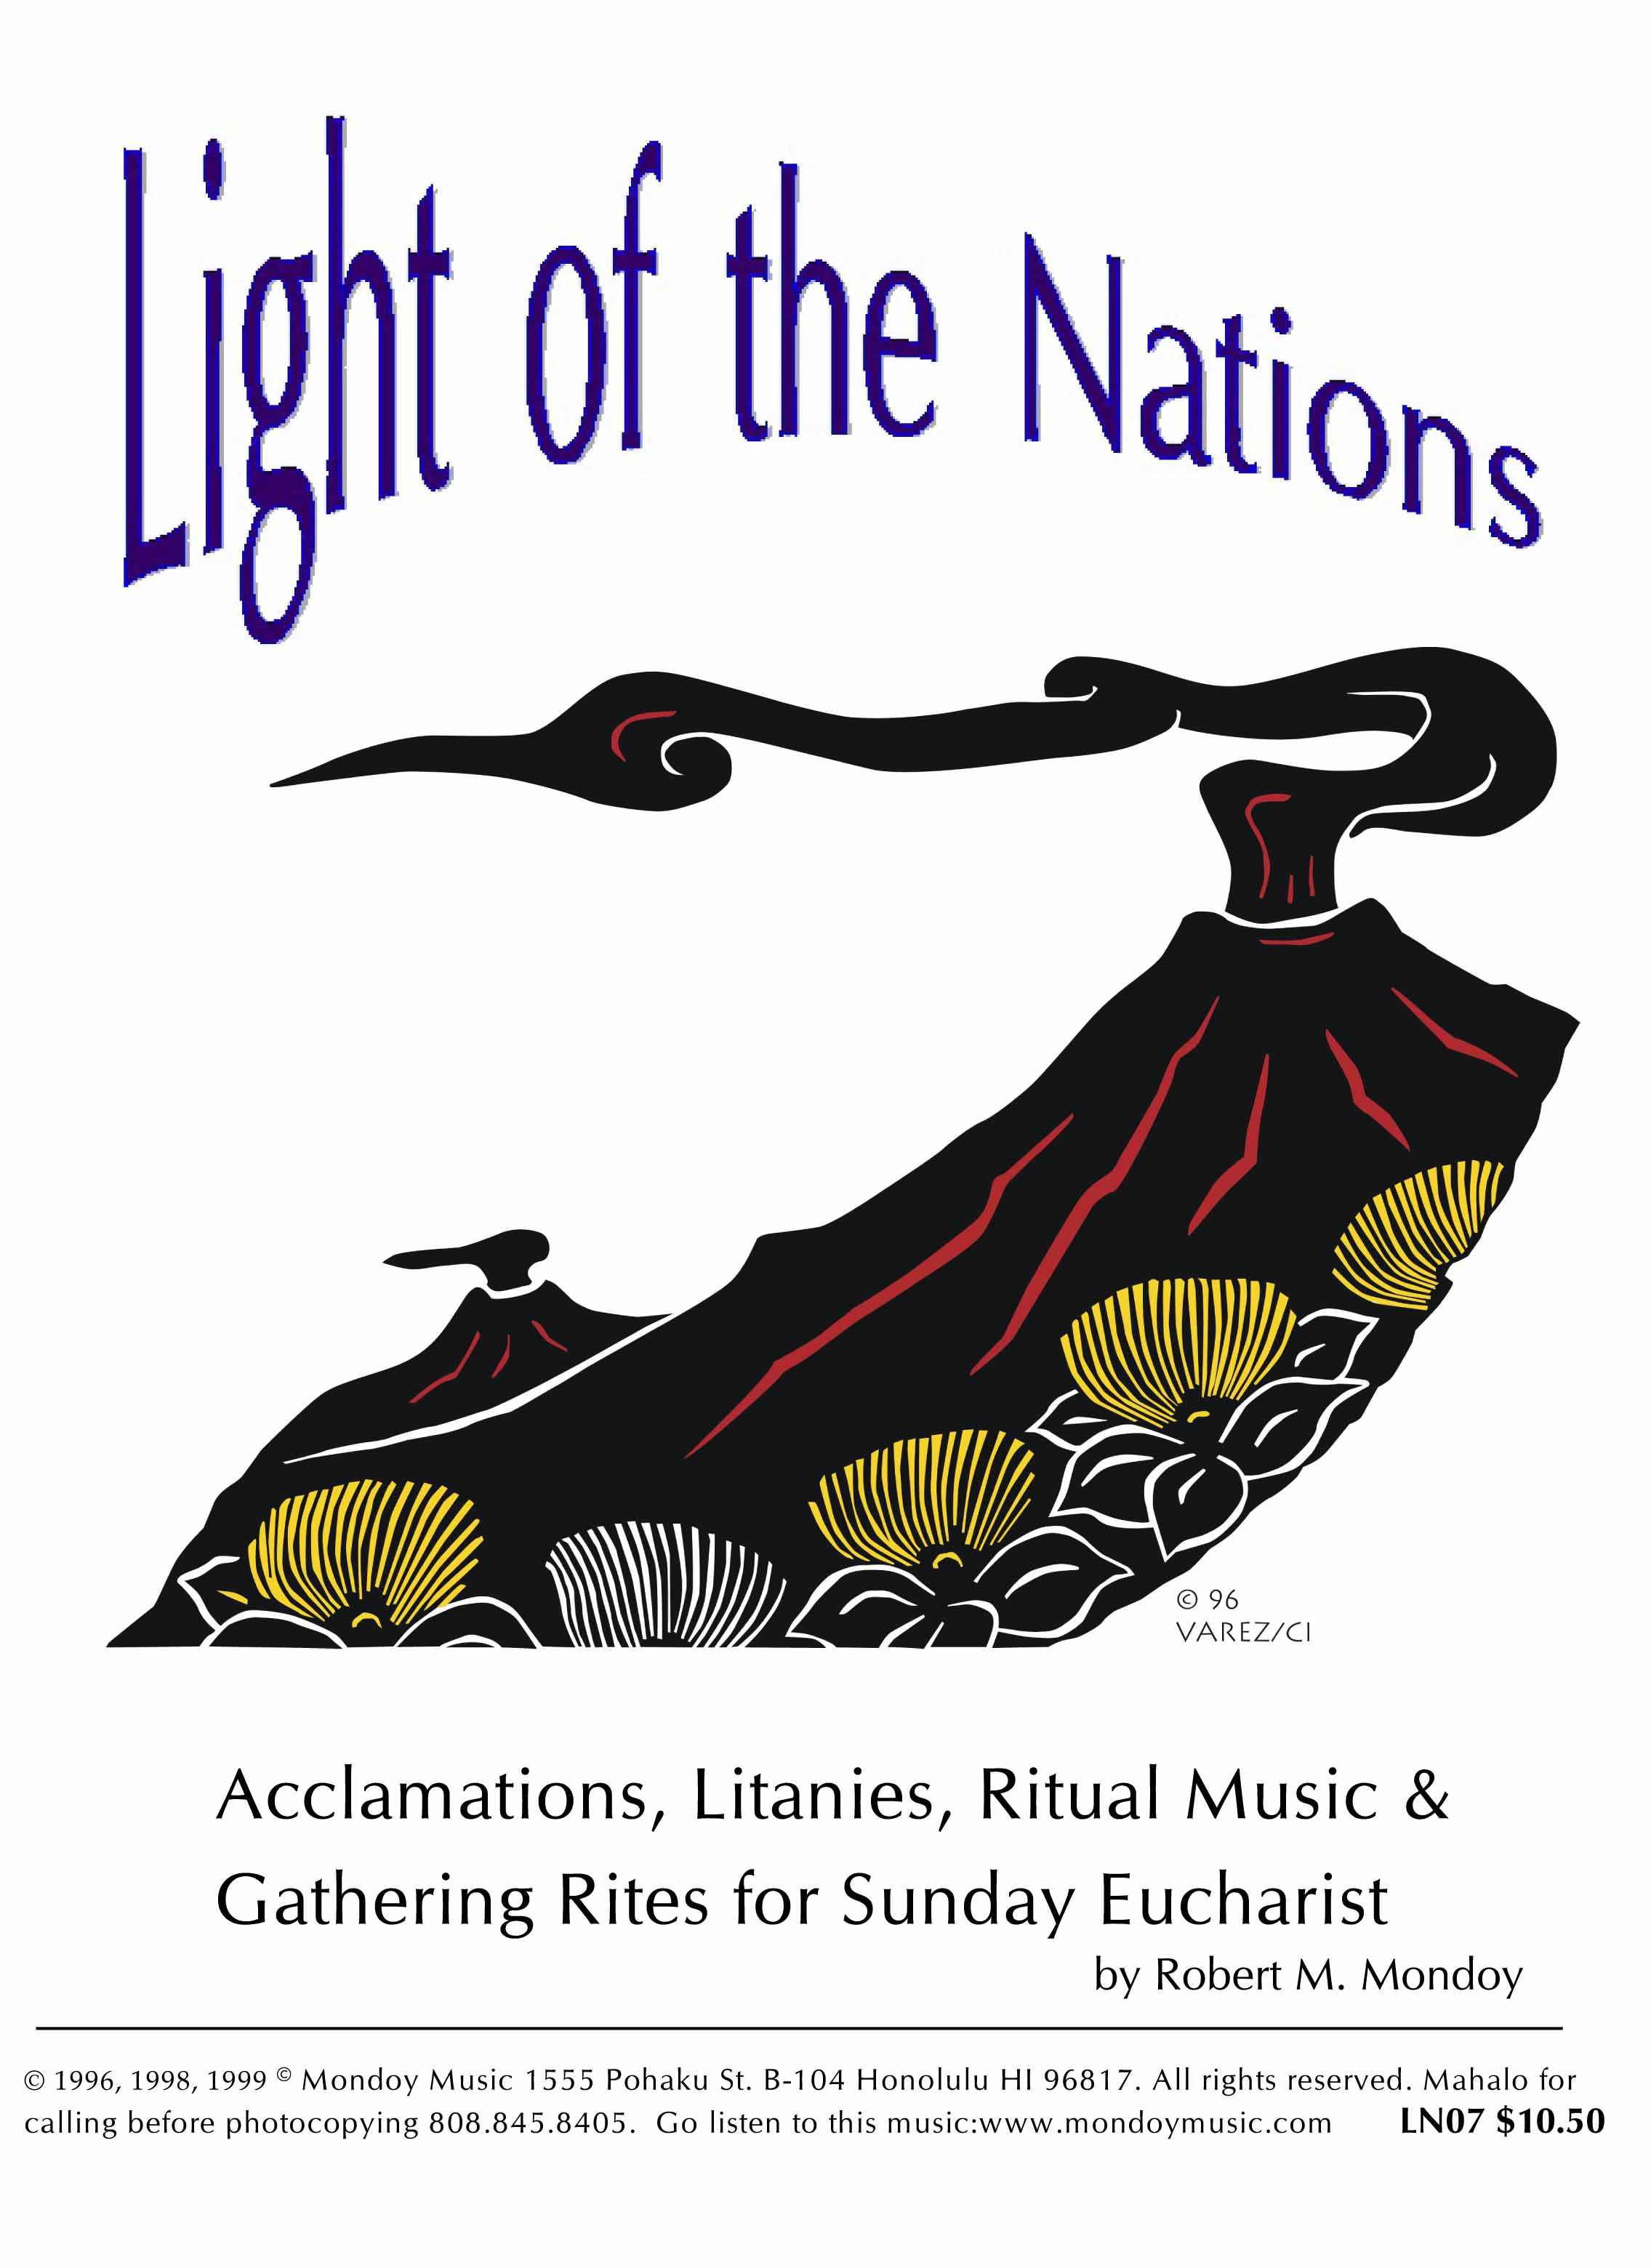 Light of the Nations